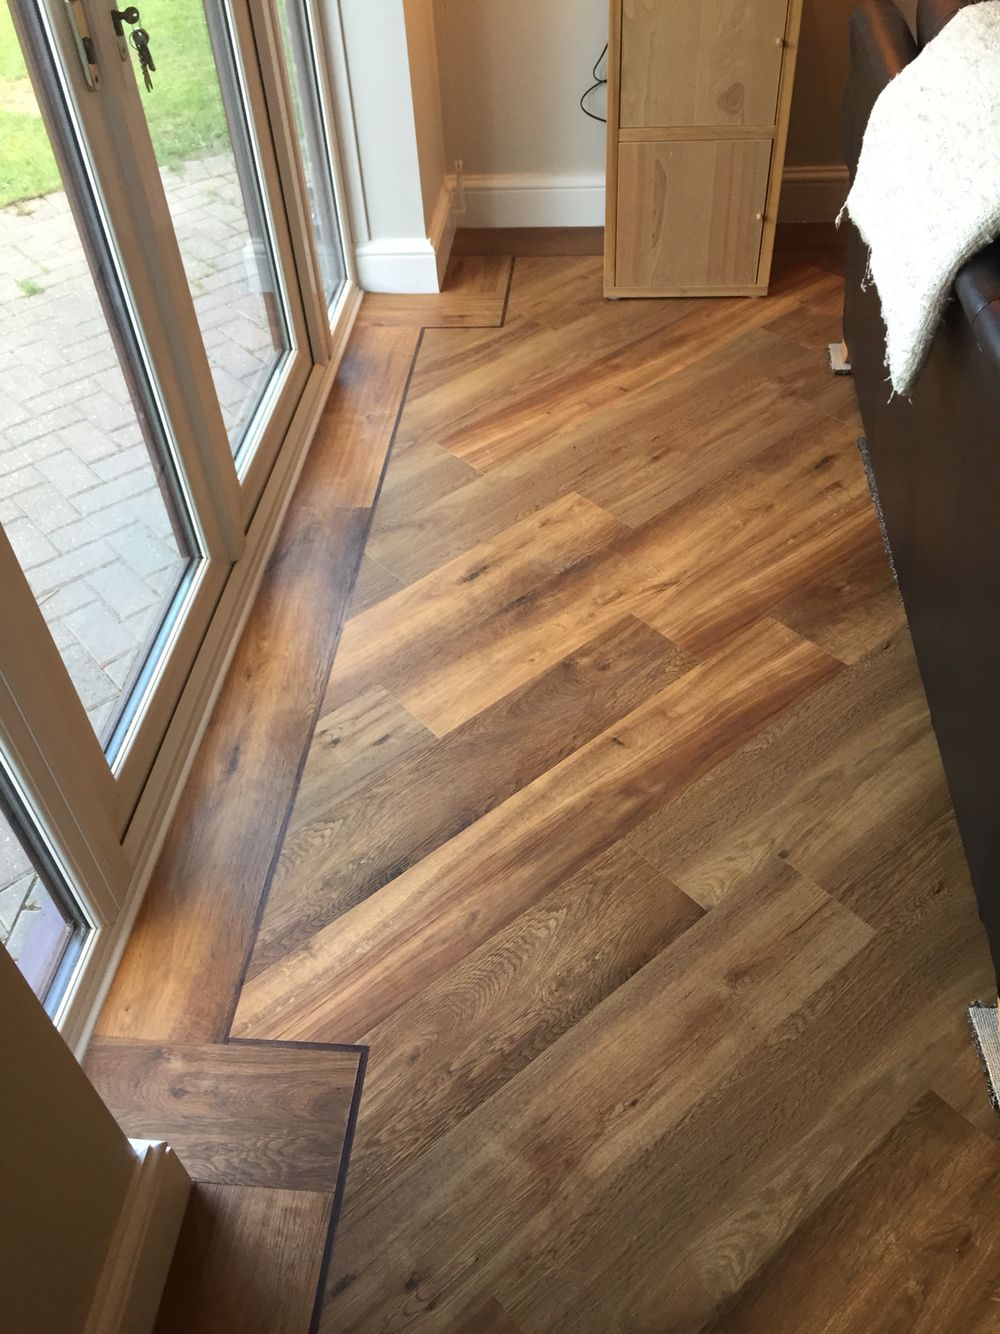 Wood Floor 90 Degree Turn Of Karndean Flooring Van Gogh Classic Oak Flooring Laid